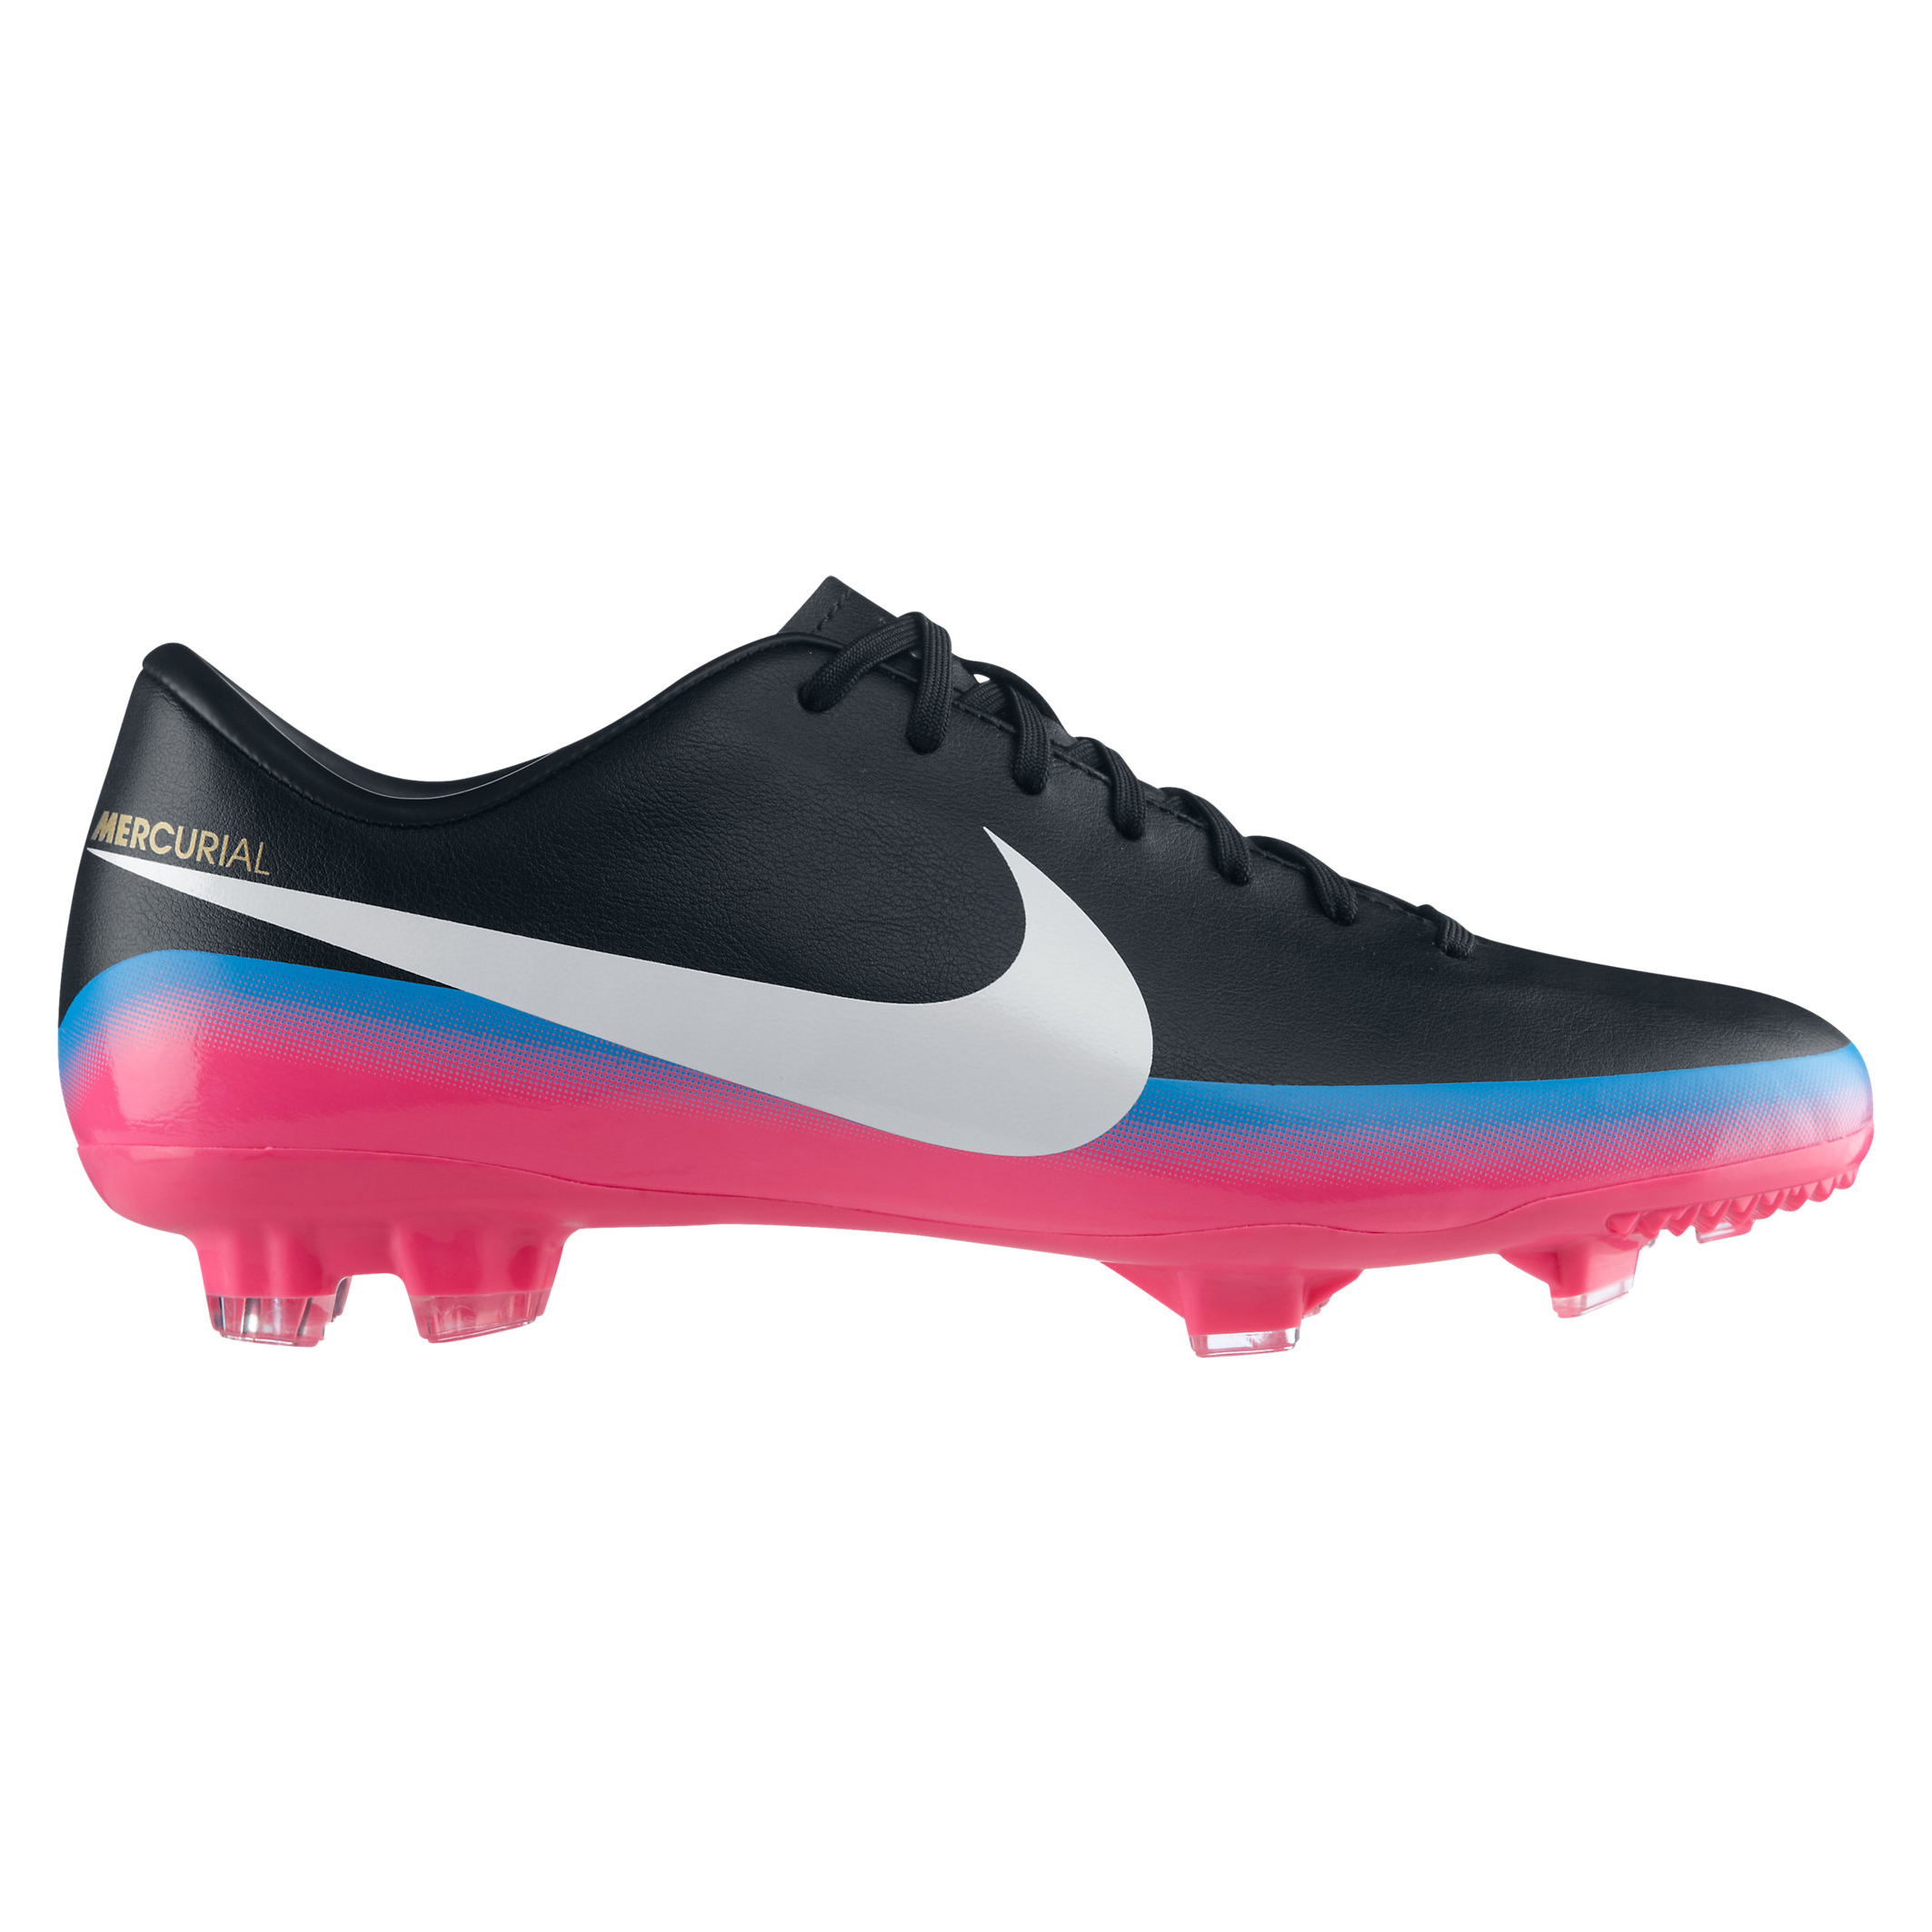 Nike Mercurial Victory III CR7 Firm Ground Football Boots - Black/White/Blue Glow/Pink Flash